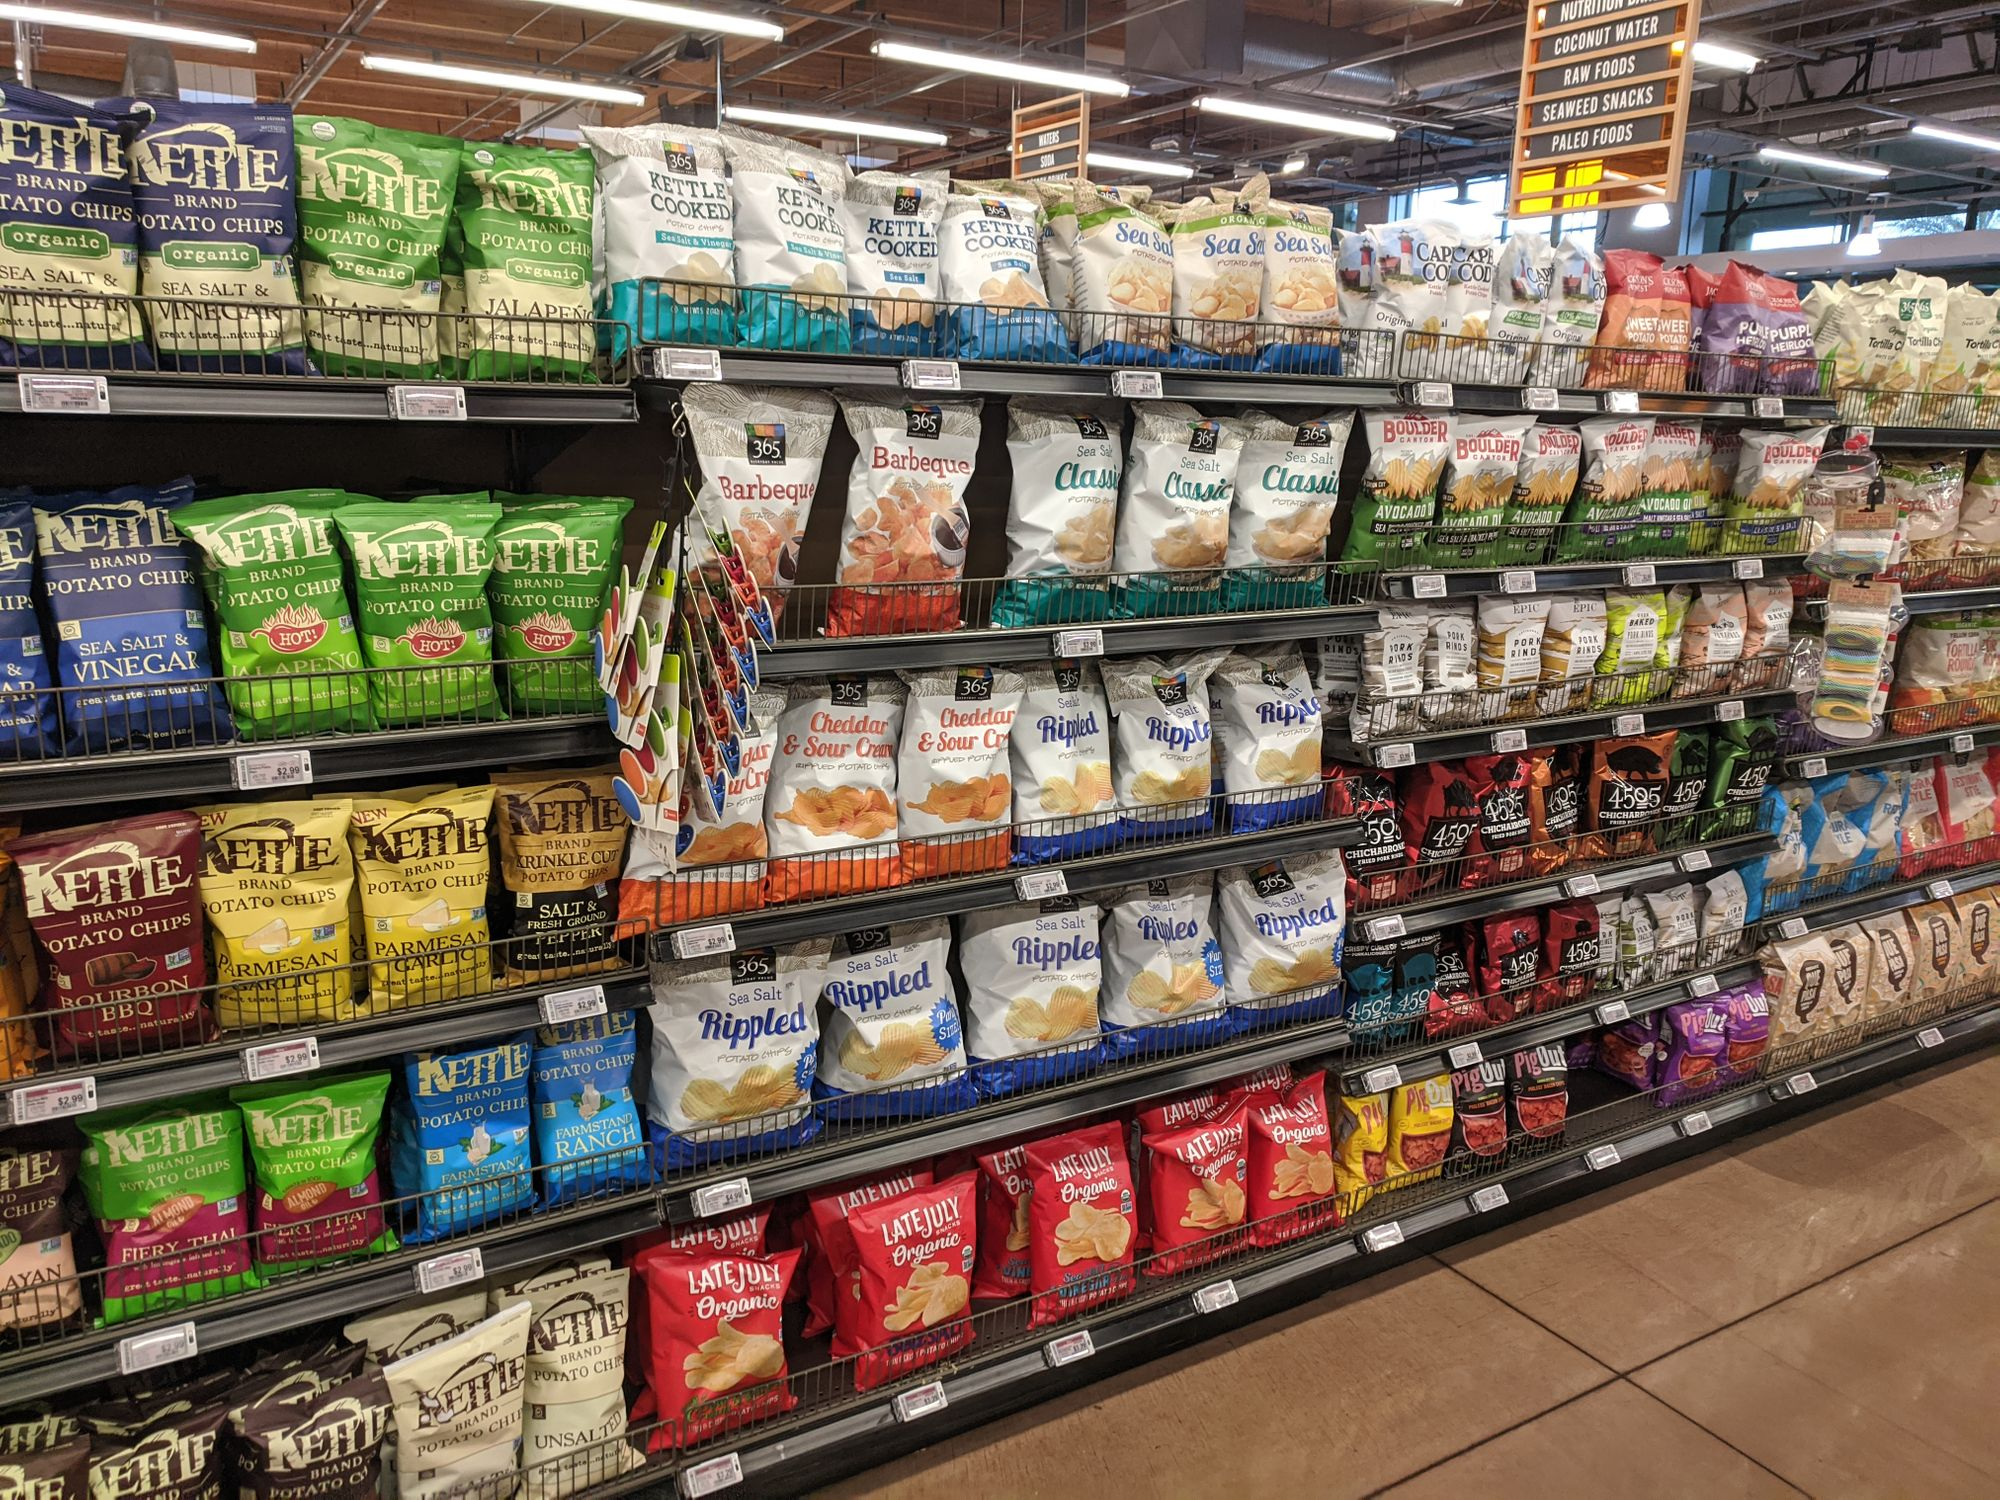 The chip aisle at Whole Foods